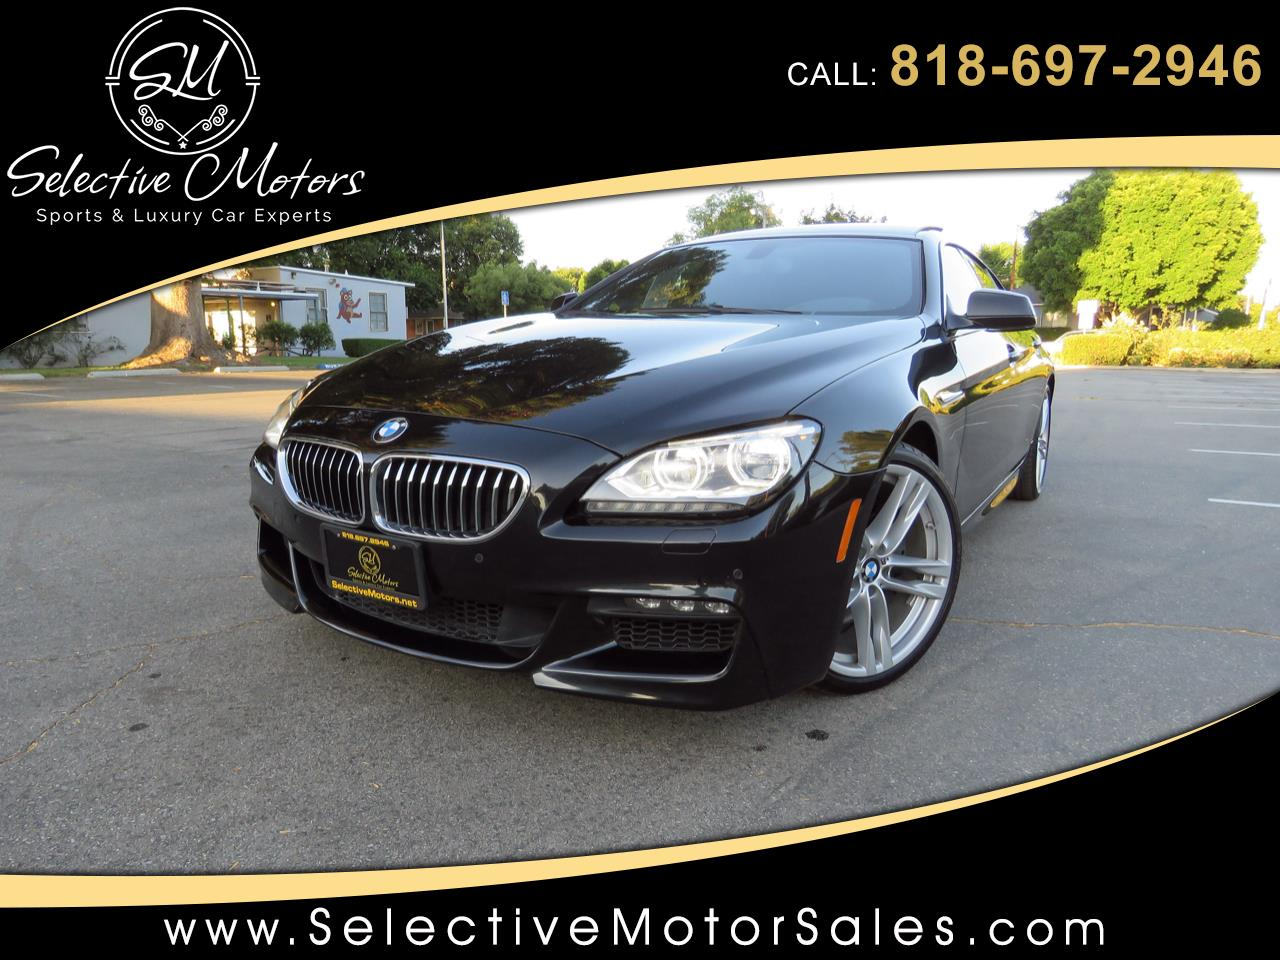 2015 BMW 6-Series Gran Coupe 640i M-Sport